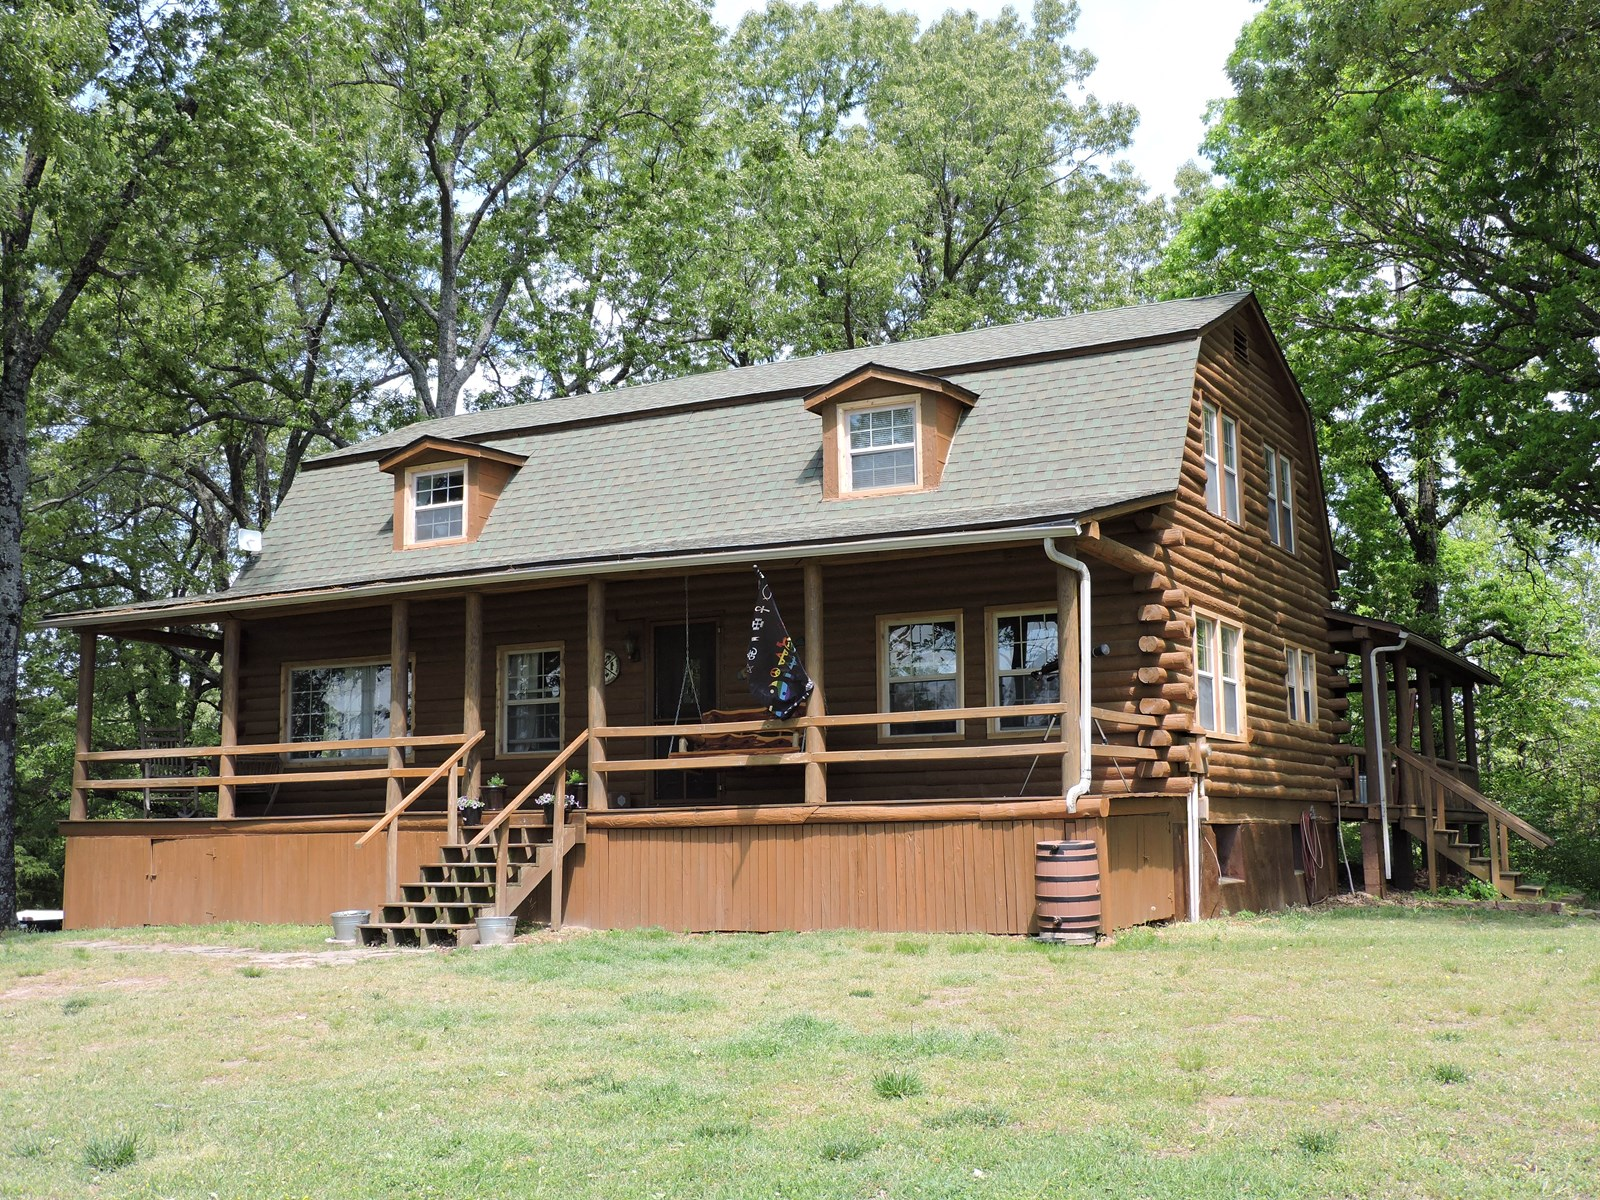 Mountain Property Log Home with Acreage near Buffalo River